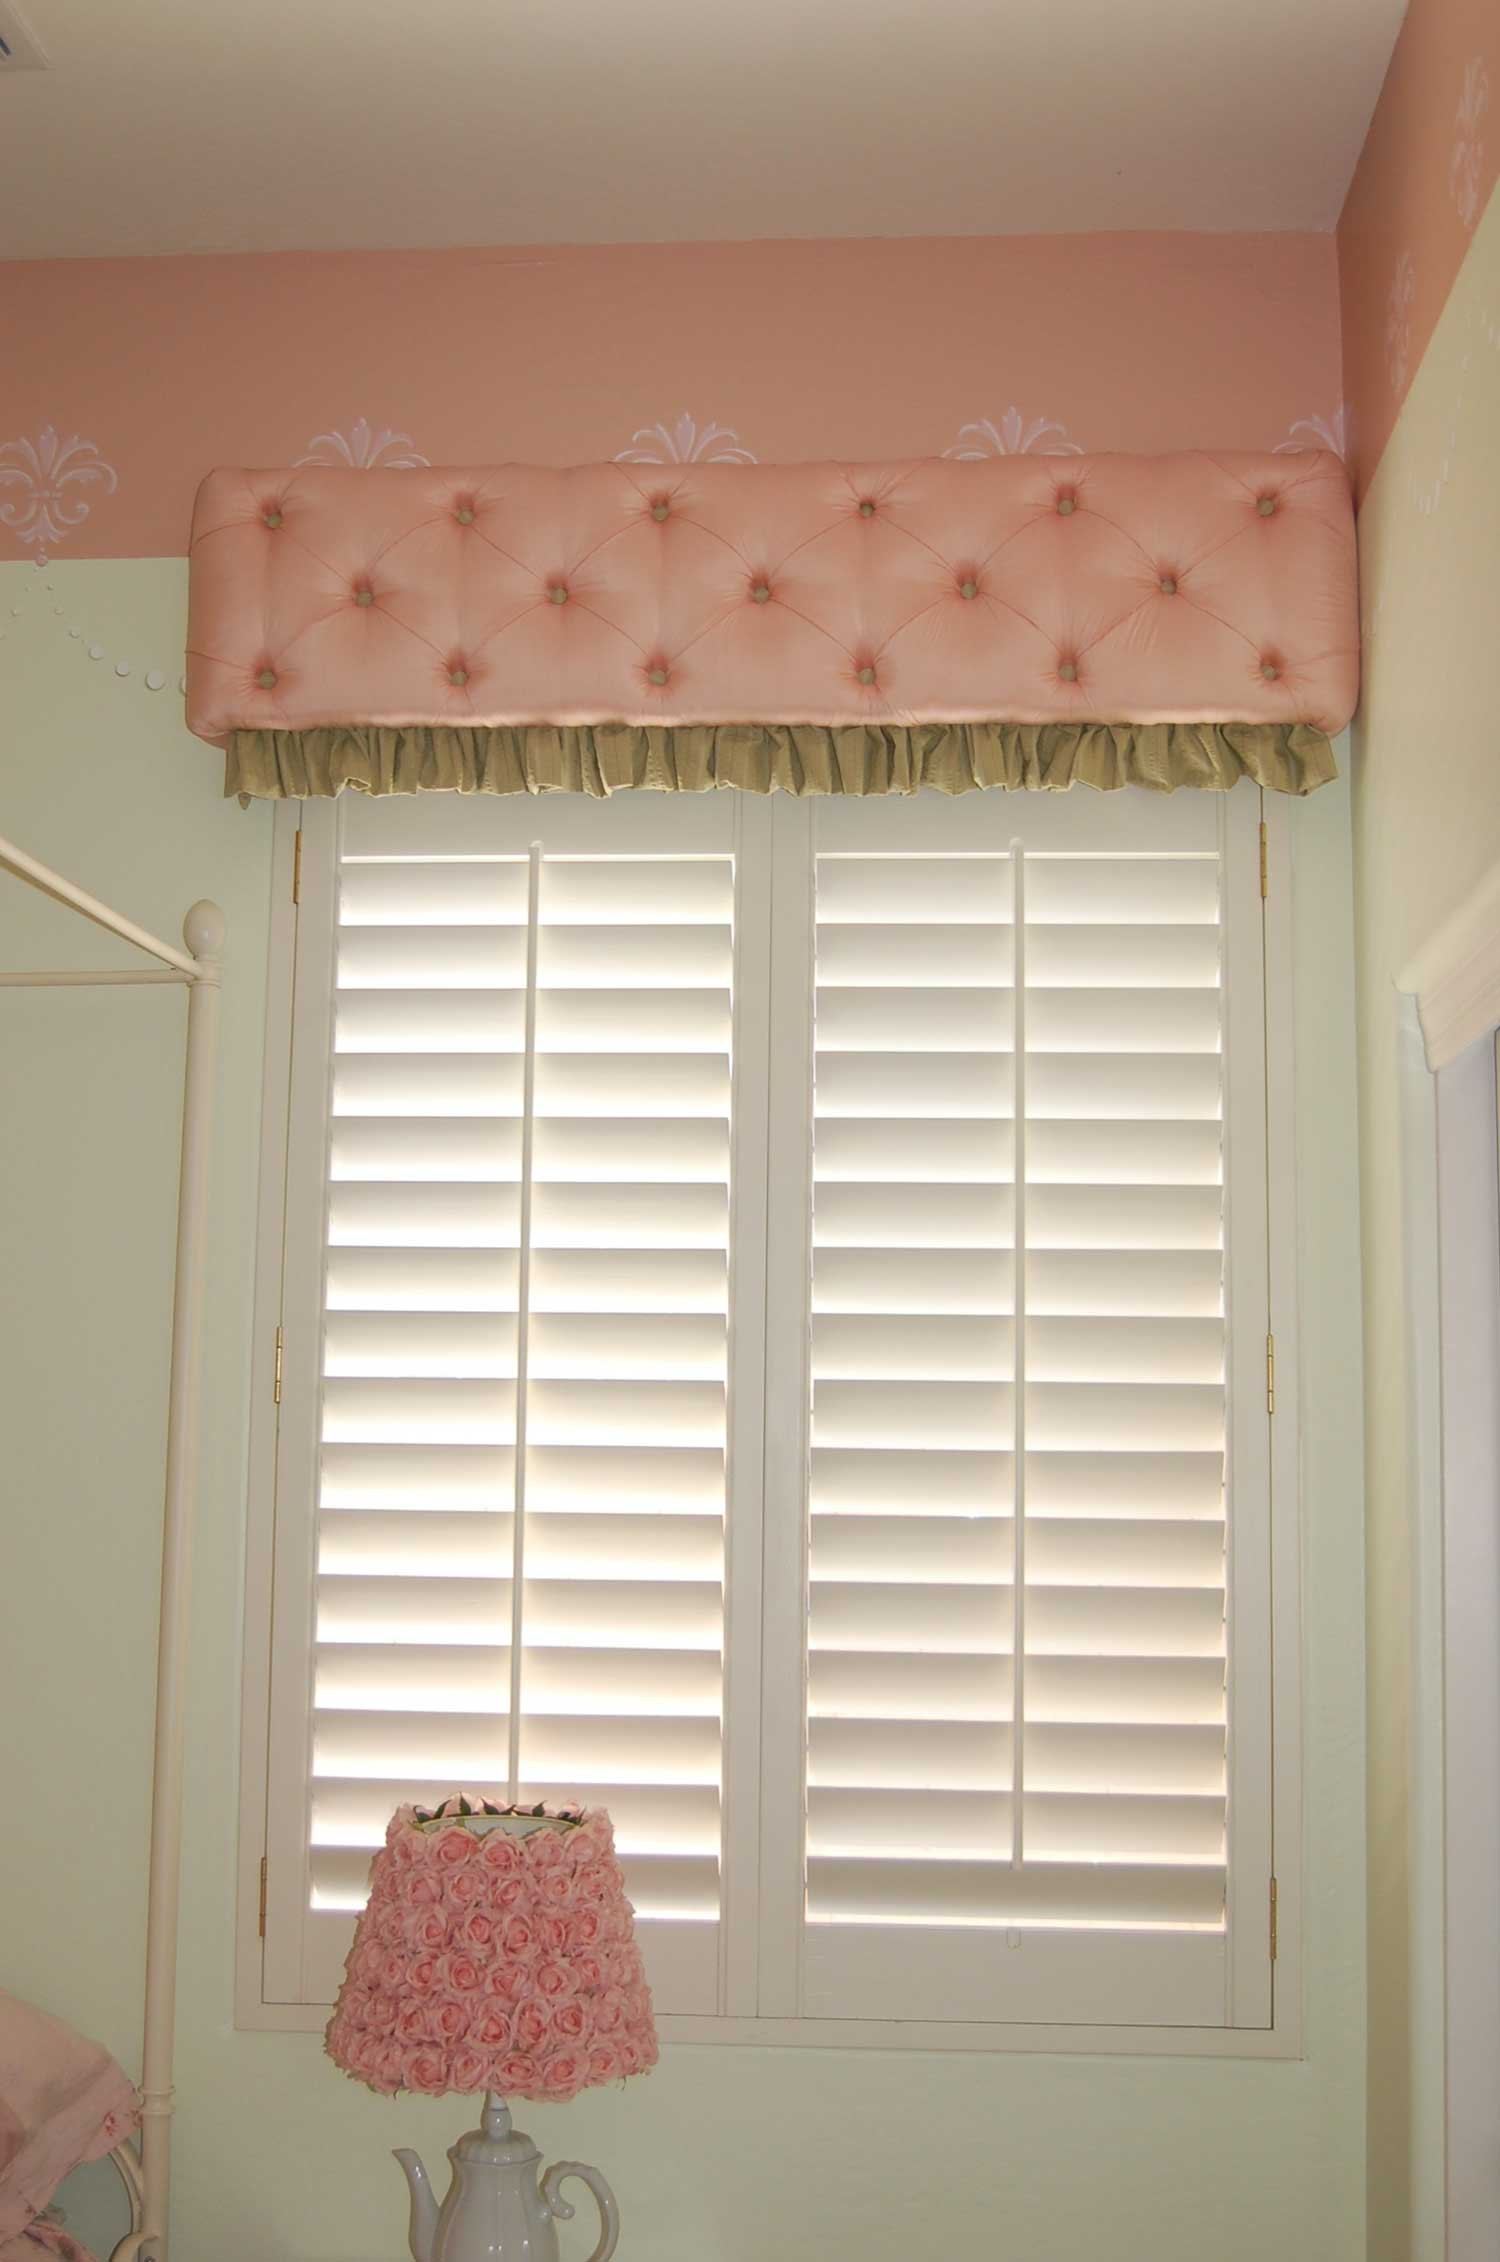 Button tufted Cornice with Ruffle over a shaded window